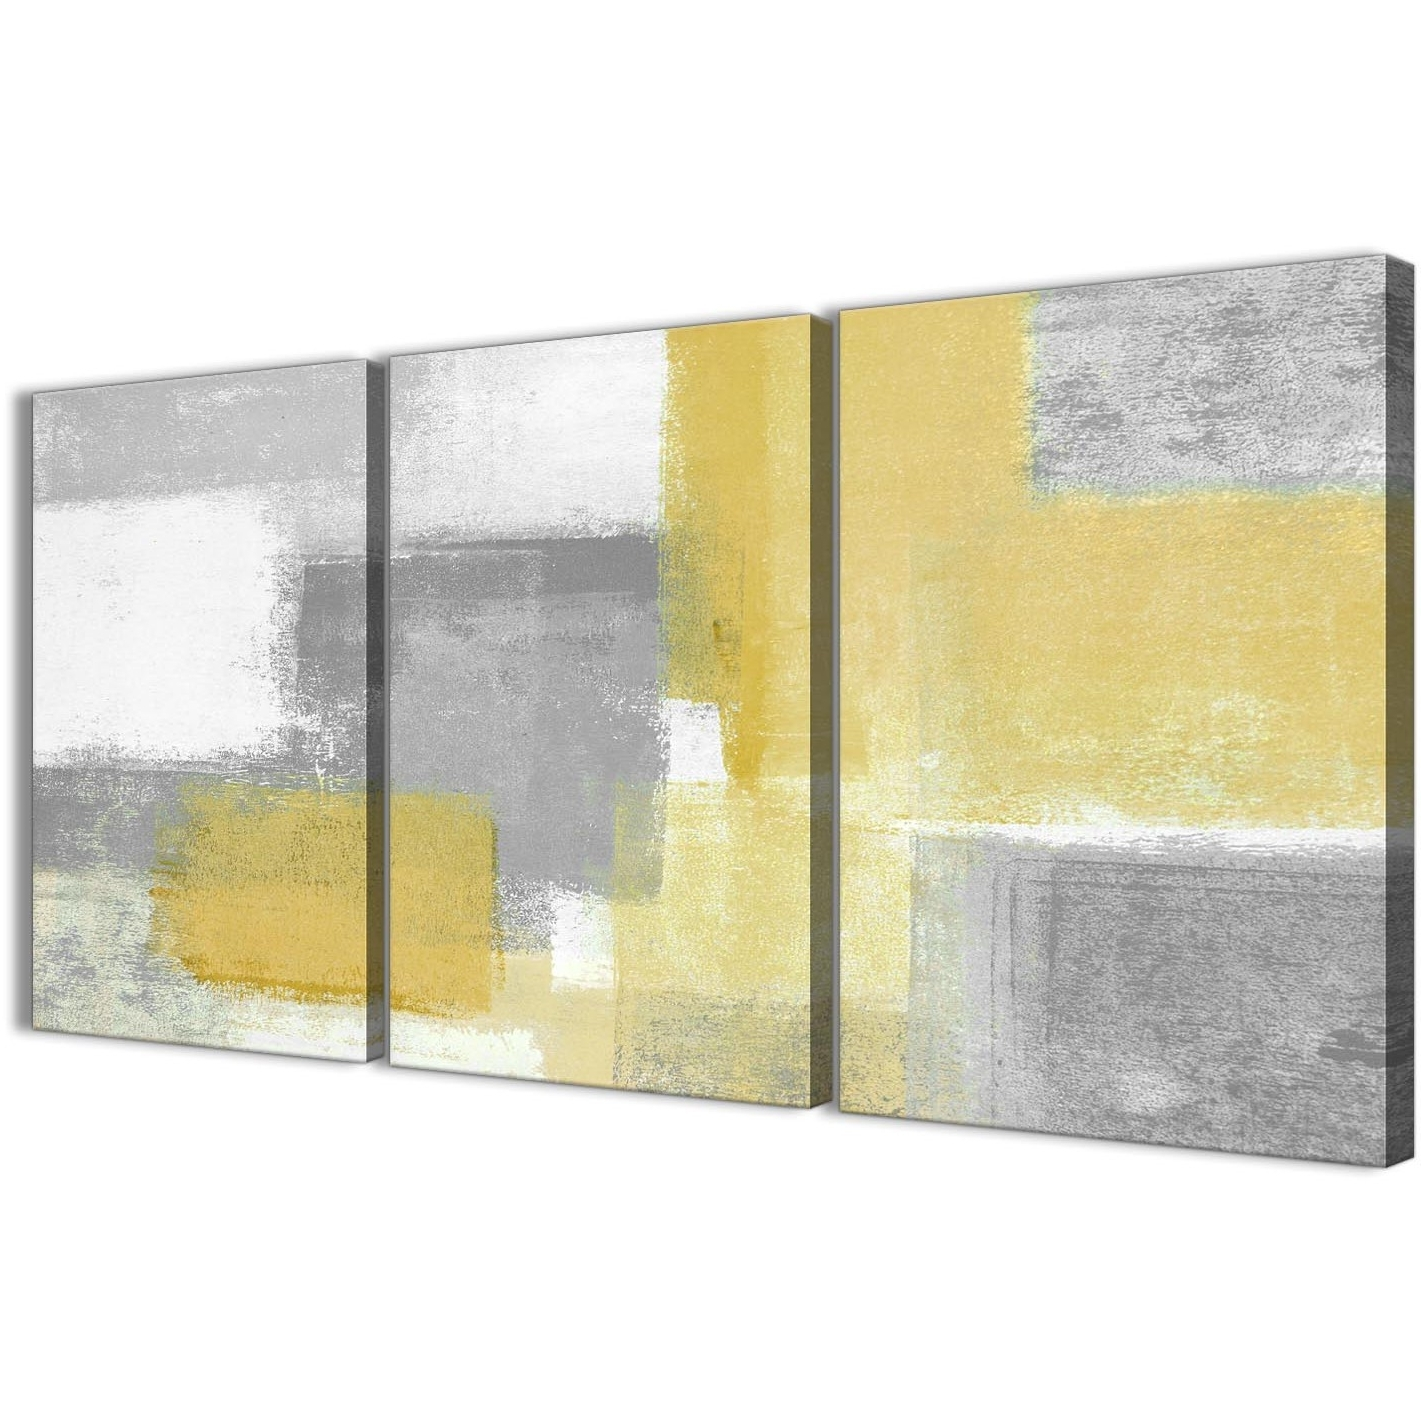 3 Panel Mustard Yellow Grey Kitchen Canvas Wall Art Decor – Abstract For Popular Canvas Wall Art (View 5 of 15)